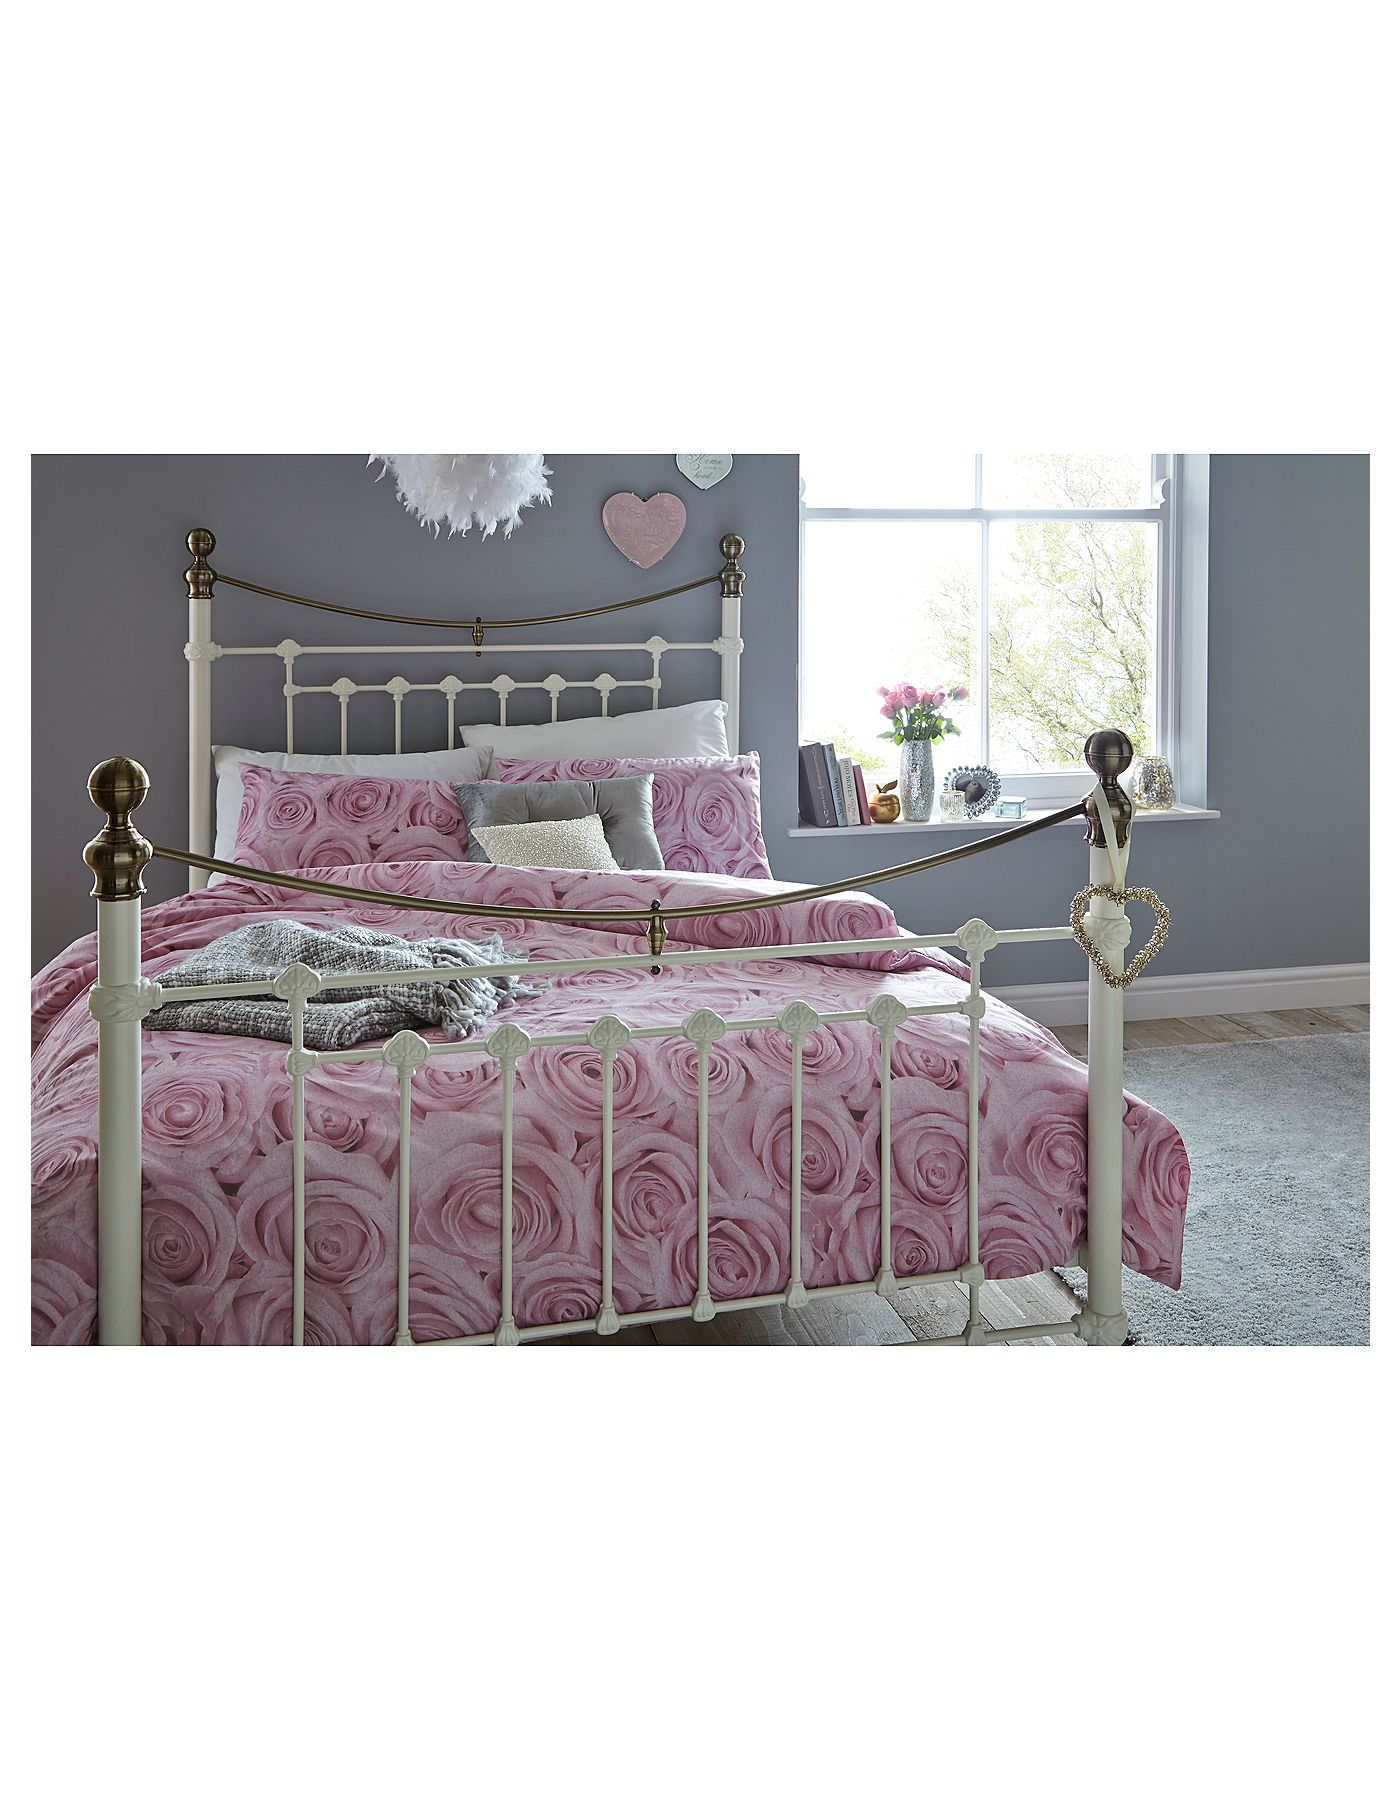 Romeo King Size Bed White Bed Frames Asda Direct